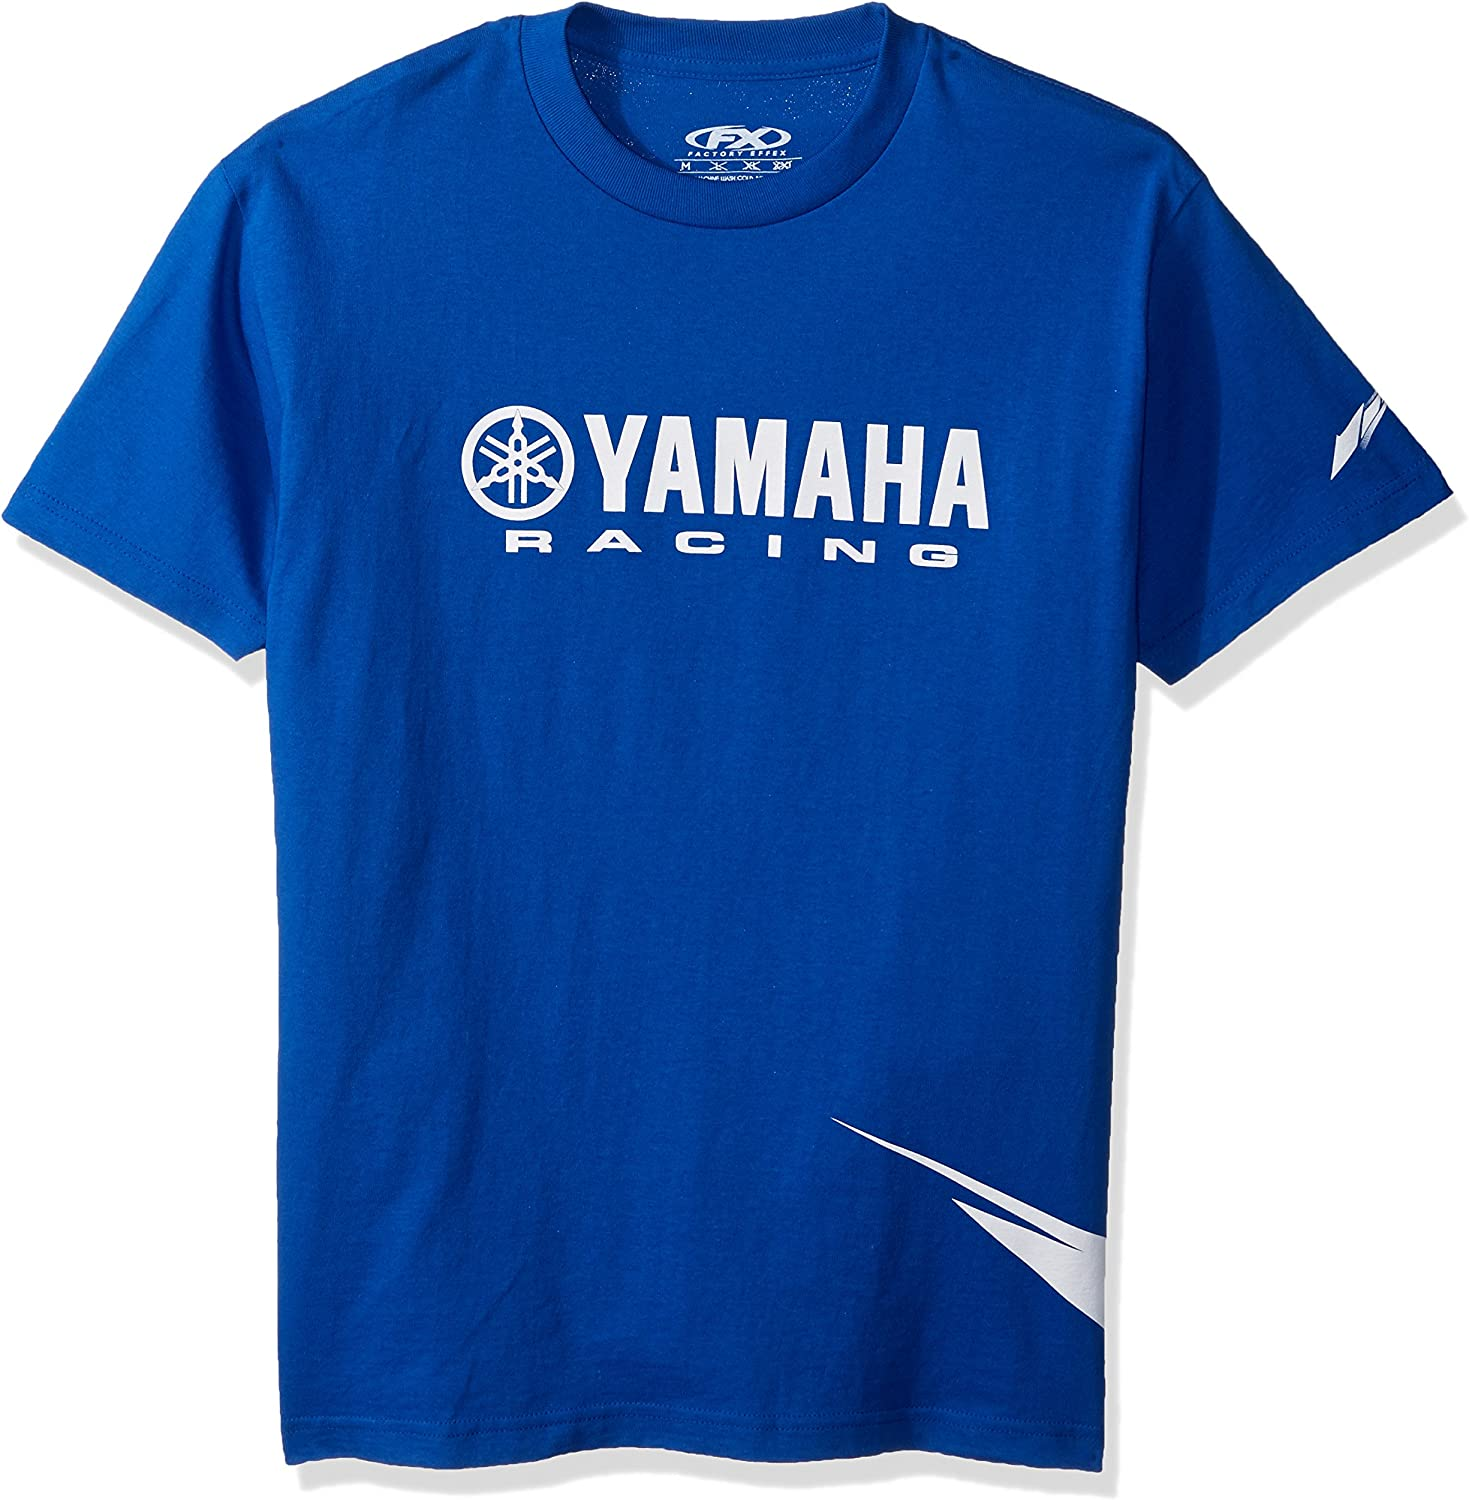 Black, X-Large Unisex-Adult Yamaha Racing Stripes T-Shirt 1 Pack 19-87206 Factory Effex